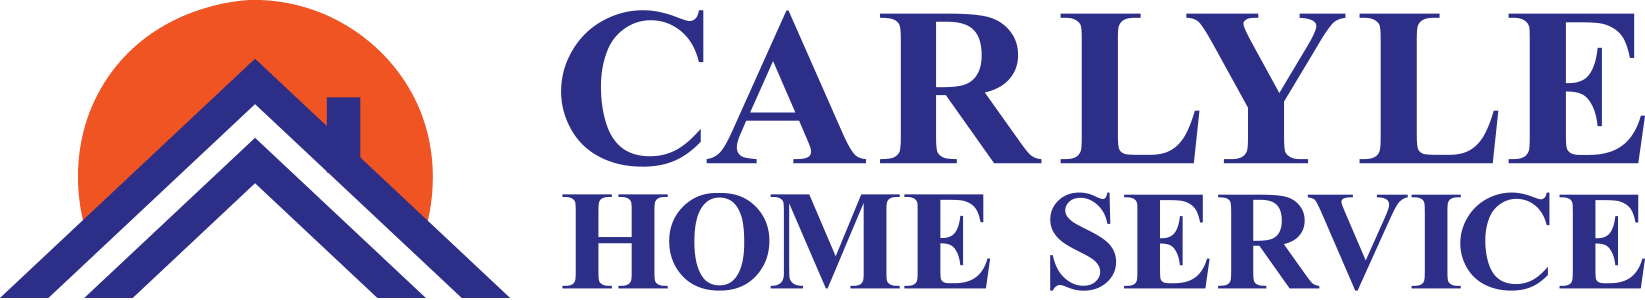 Carlyle Home Service